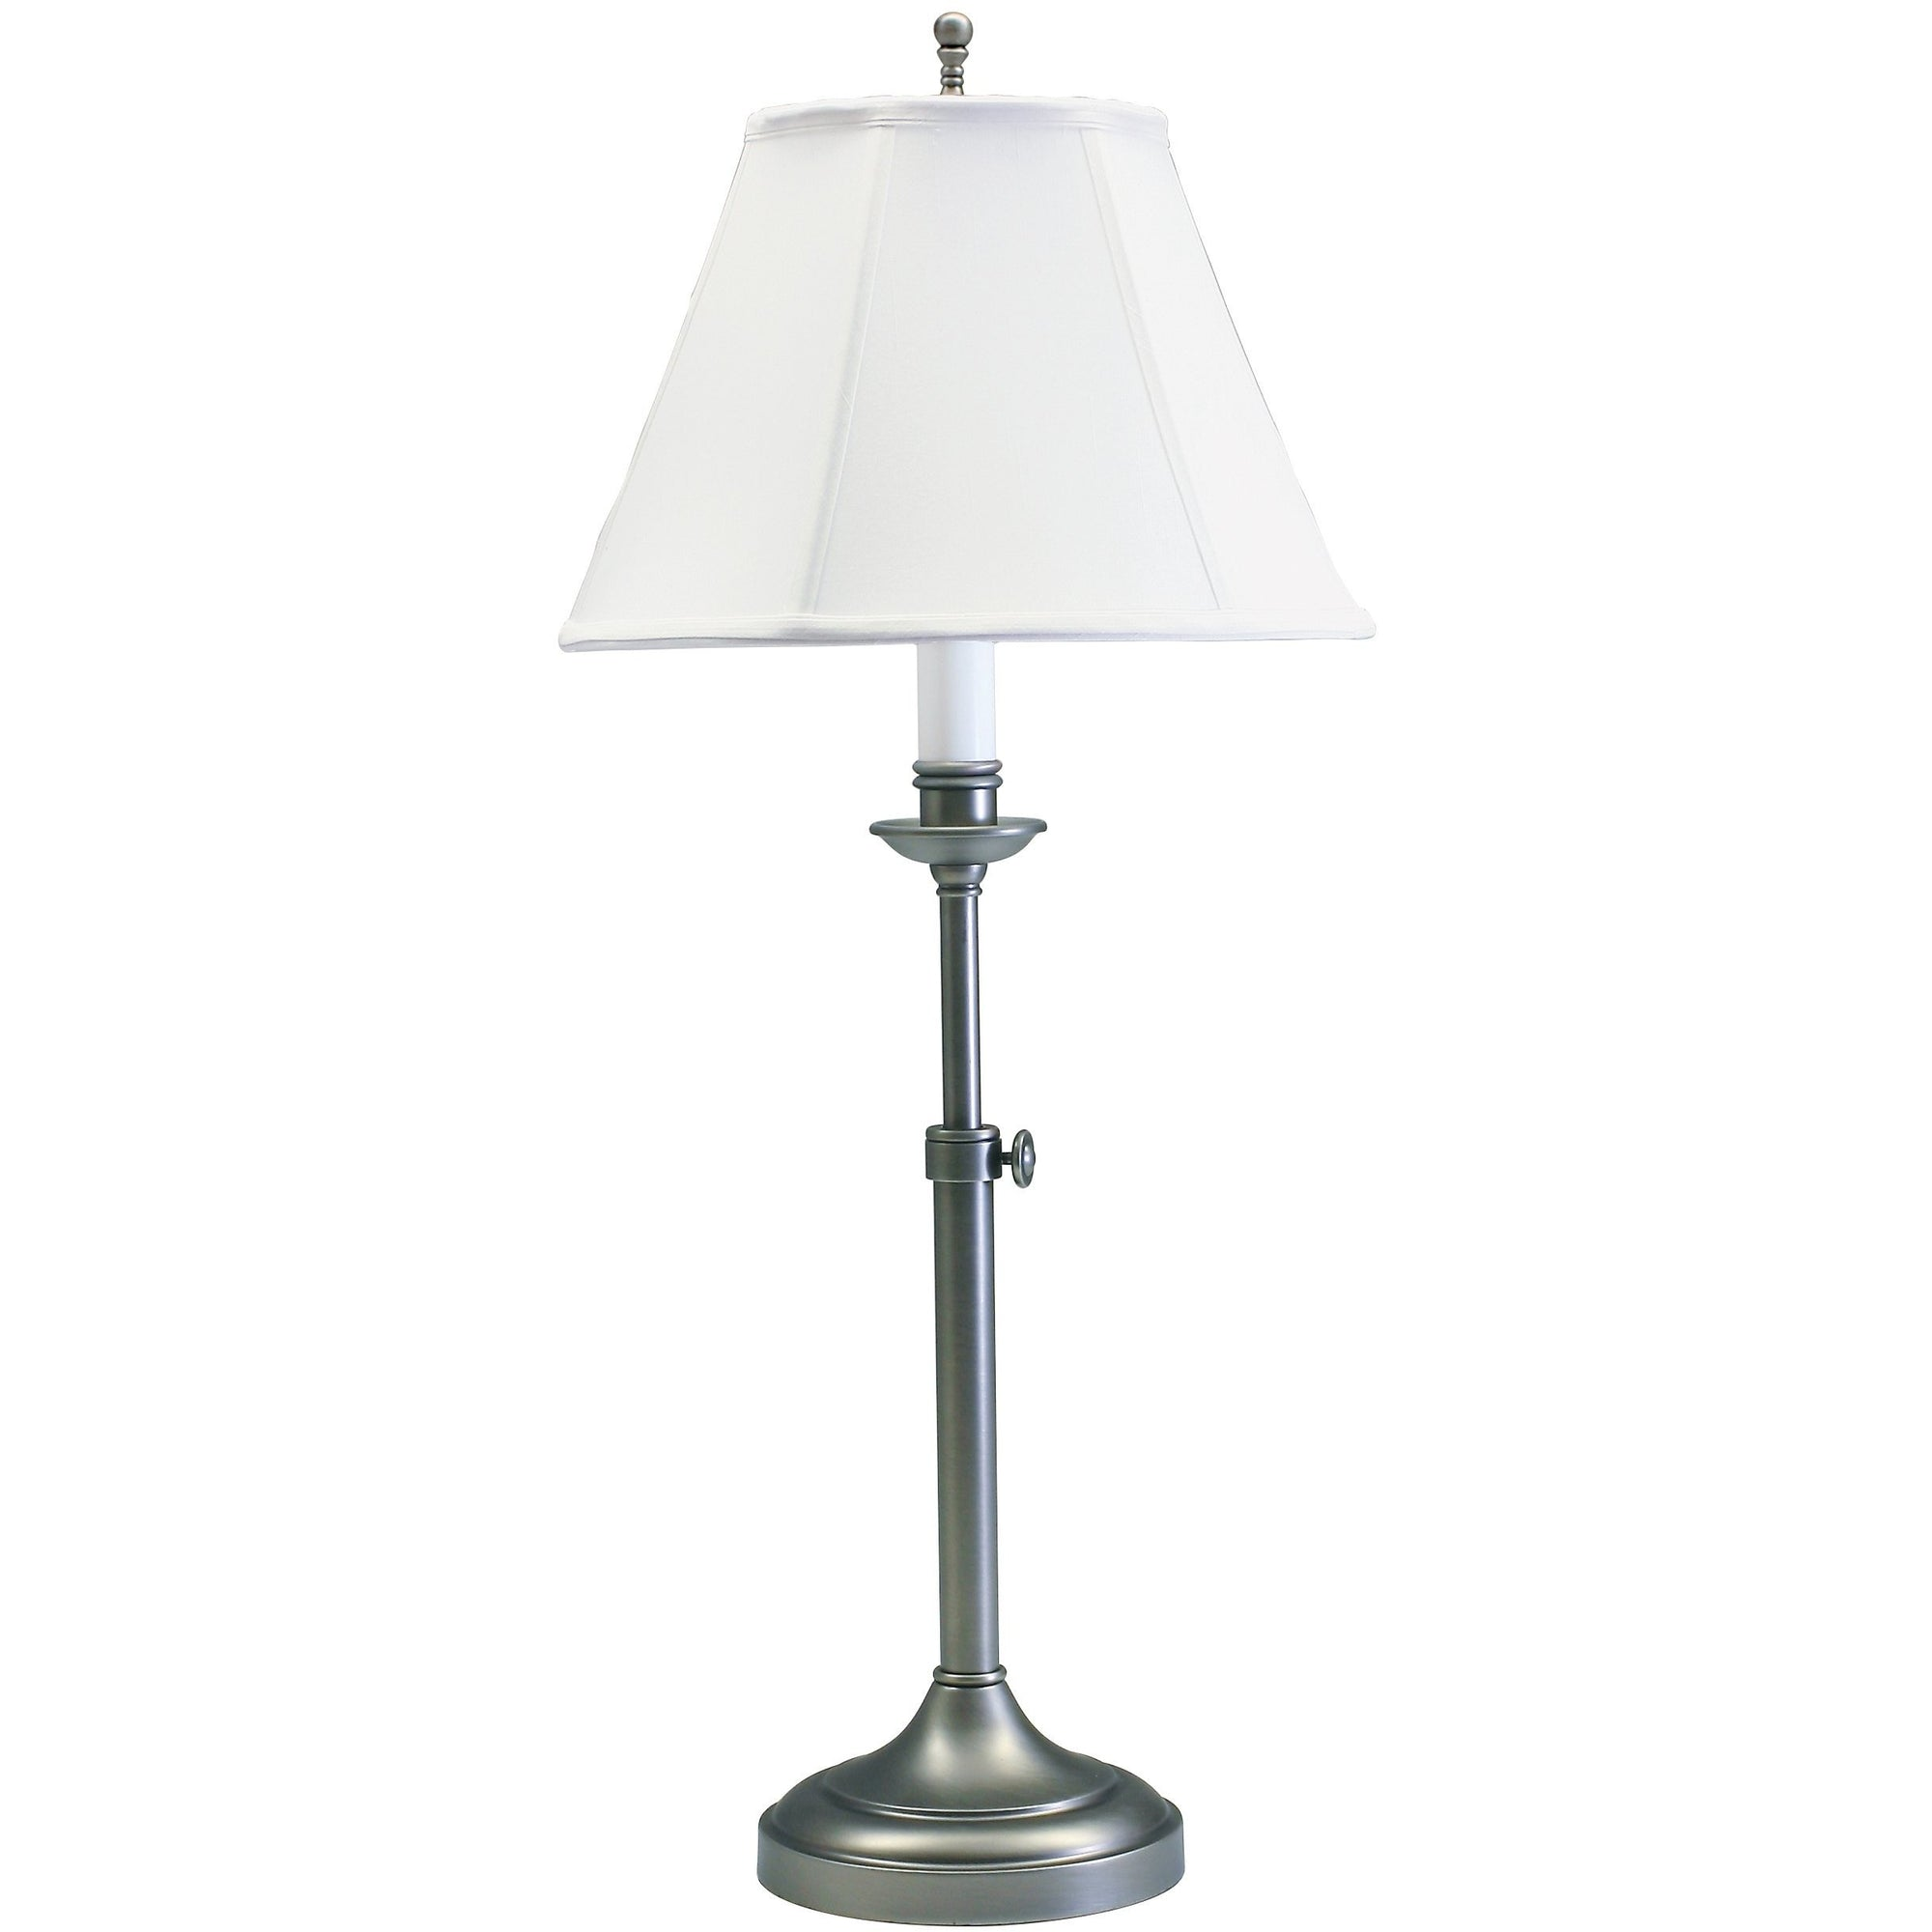 House Of Troy Table Lamps Club Adjustable Table Lamp by House Of Troy CL250-AS